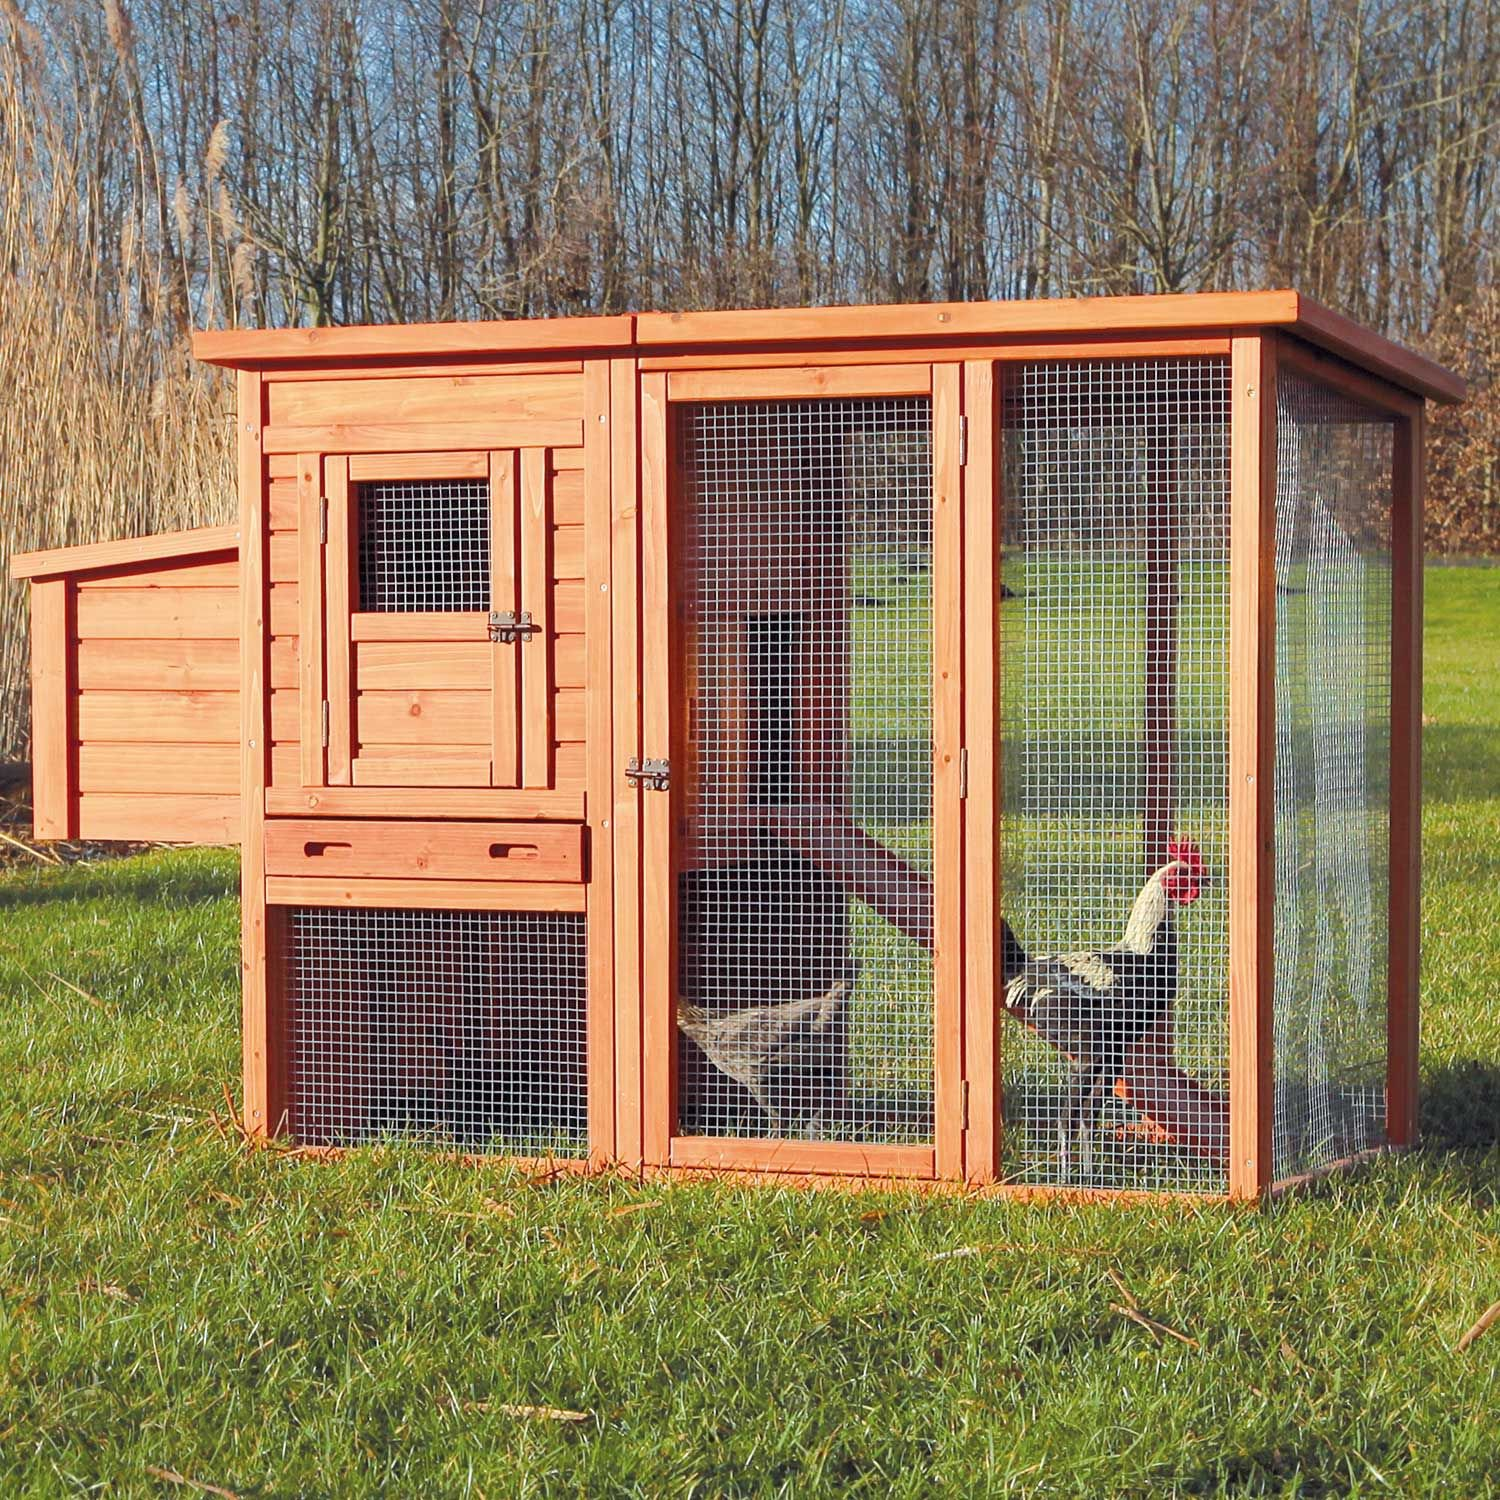 Trixie Natura Flat Roof Chicken Coop with Outdoor Run | Petco at Petco in Braselton, GA | Tuggl